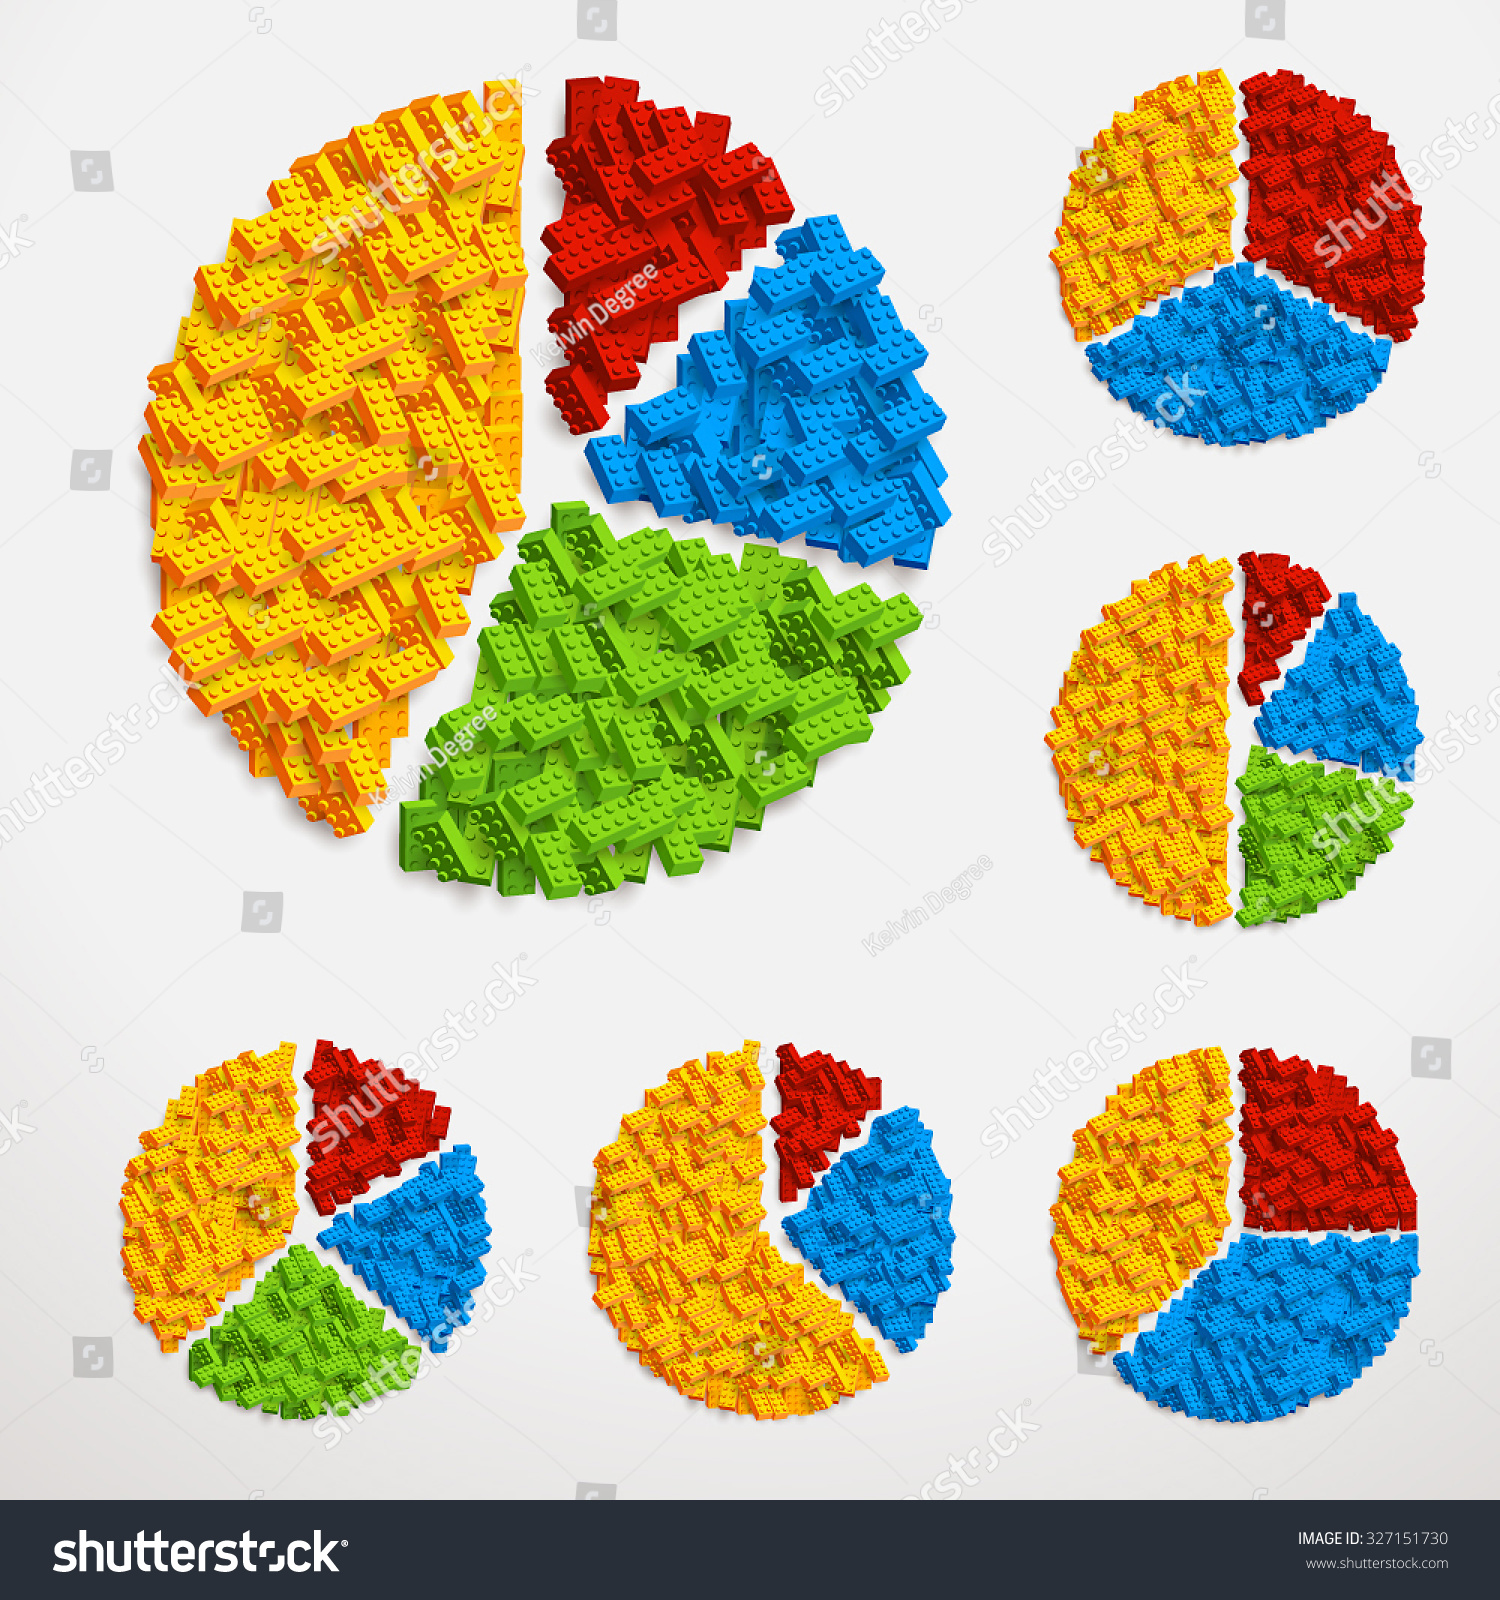 Vector Set Pie Charts Made Piles Stock Vector (Royalty Free ...